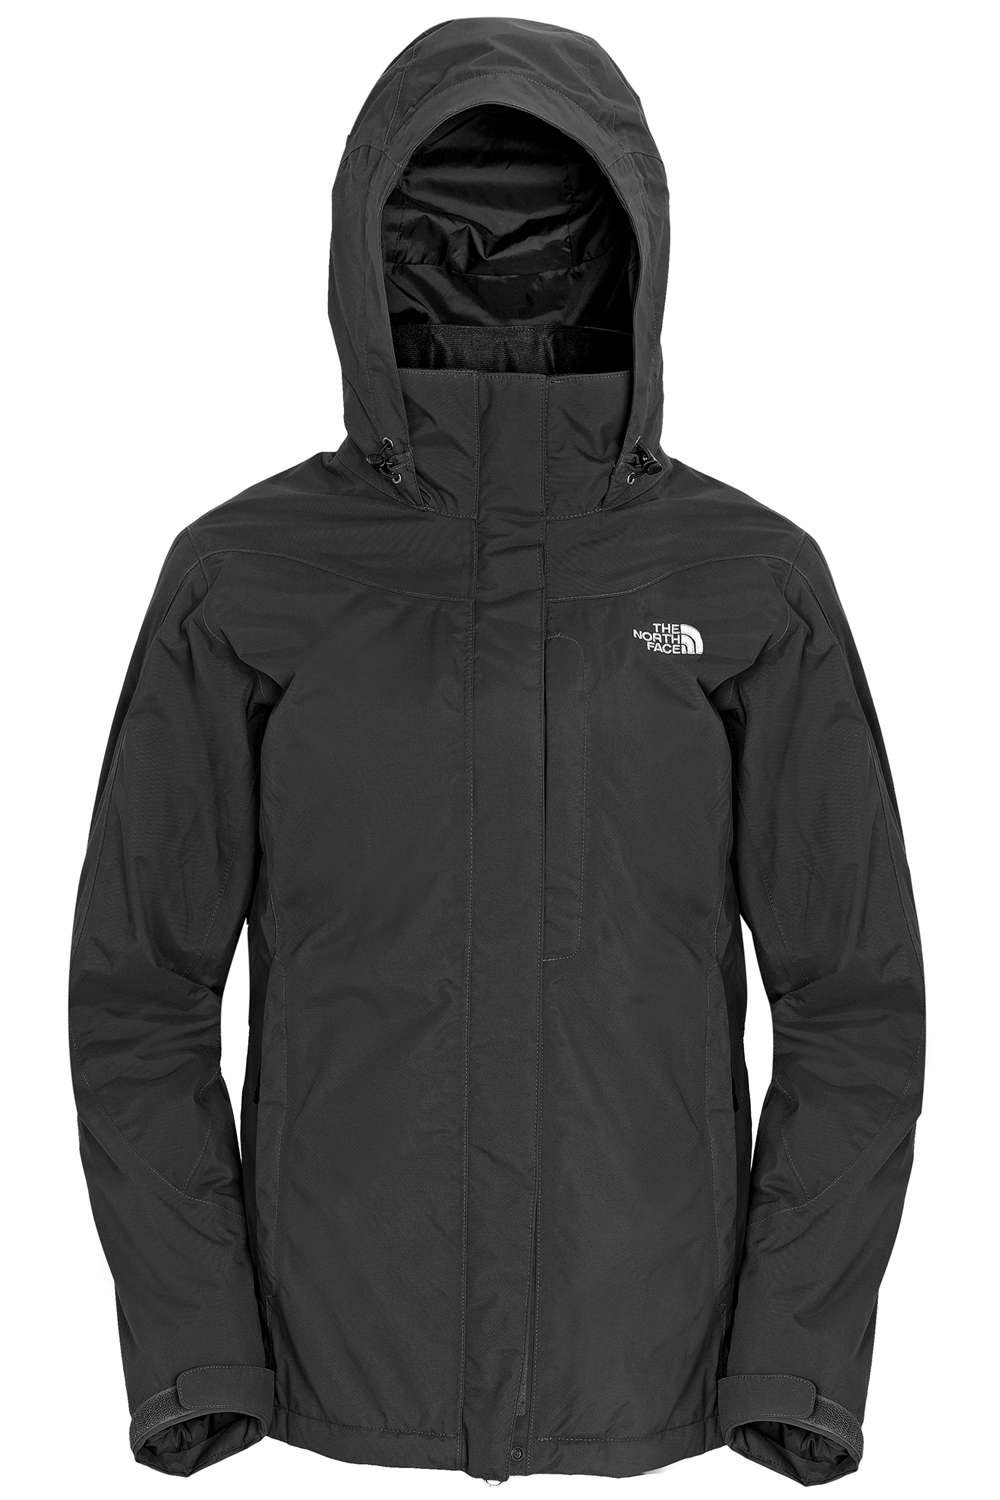 The North Face Softshelljacke Women's Highland Jacket bittersweet brown